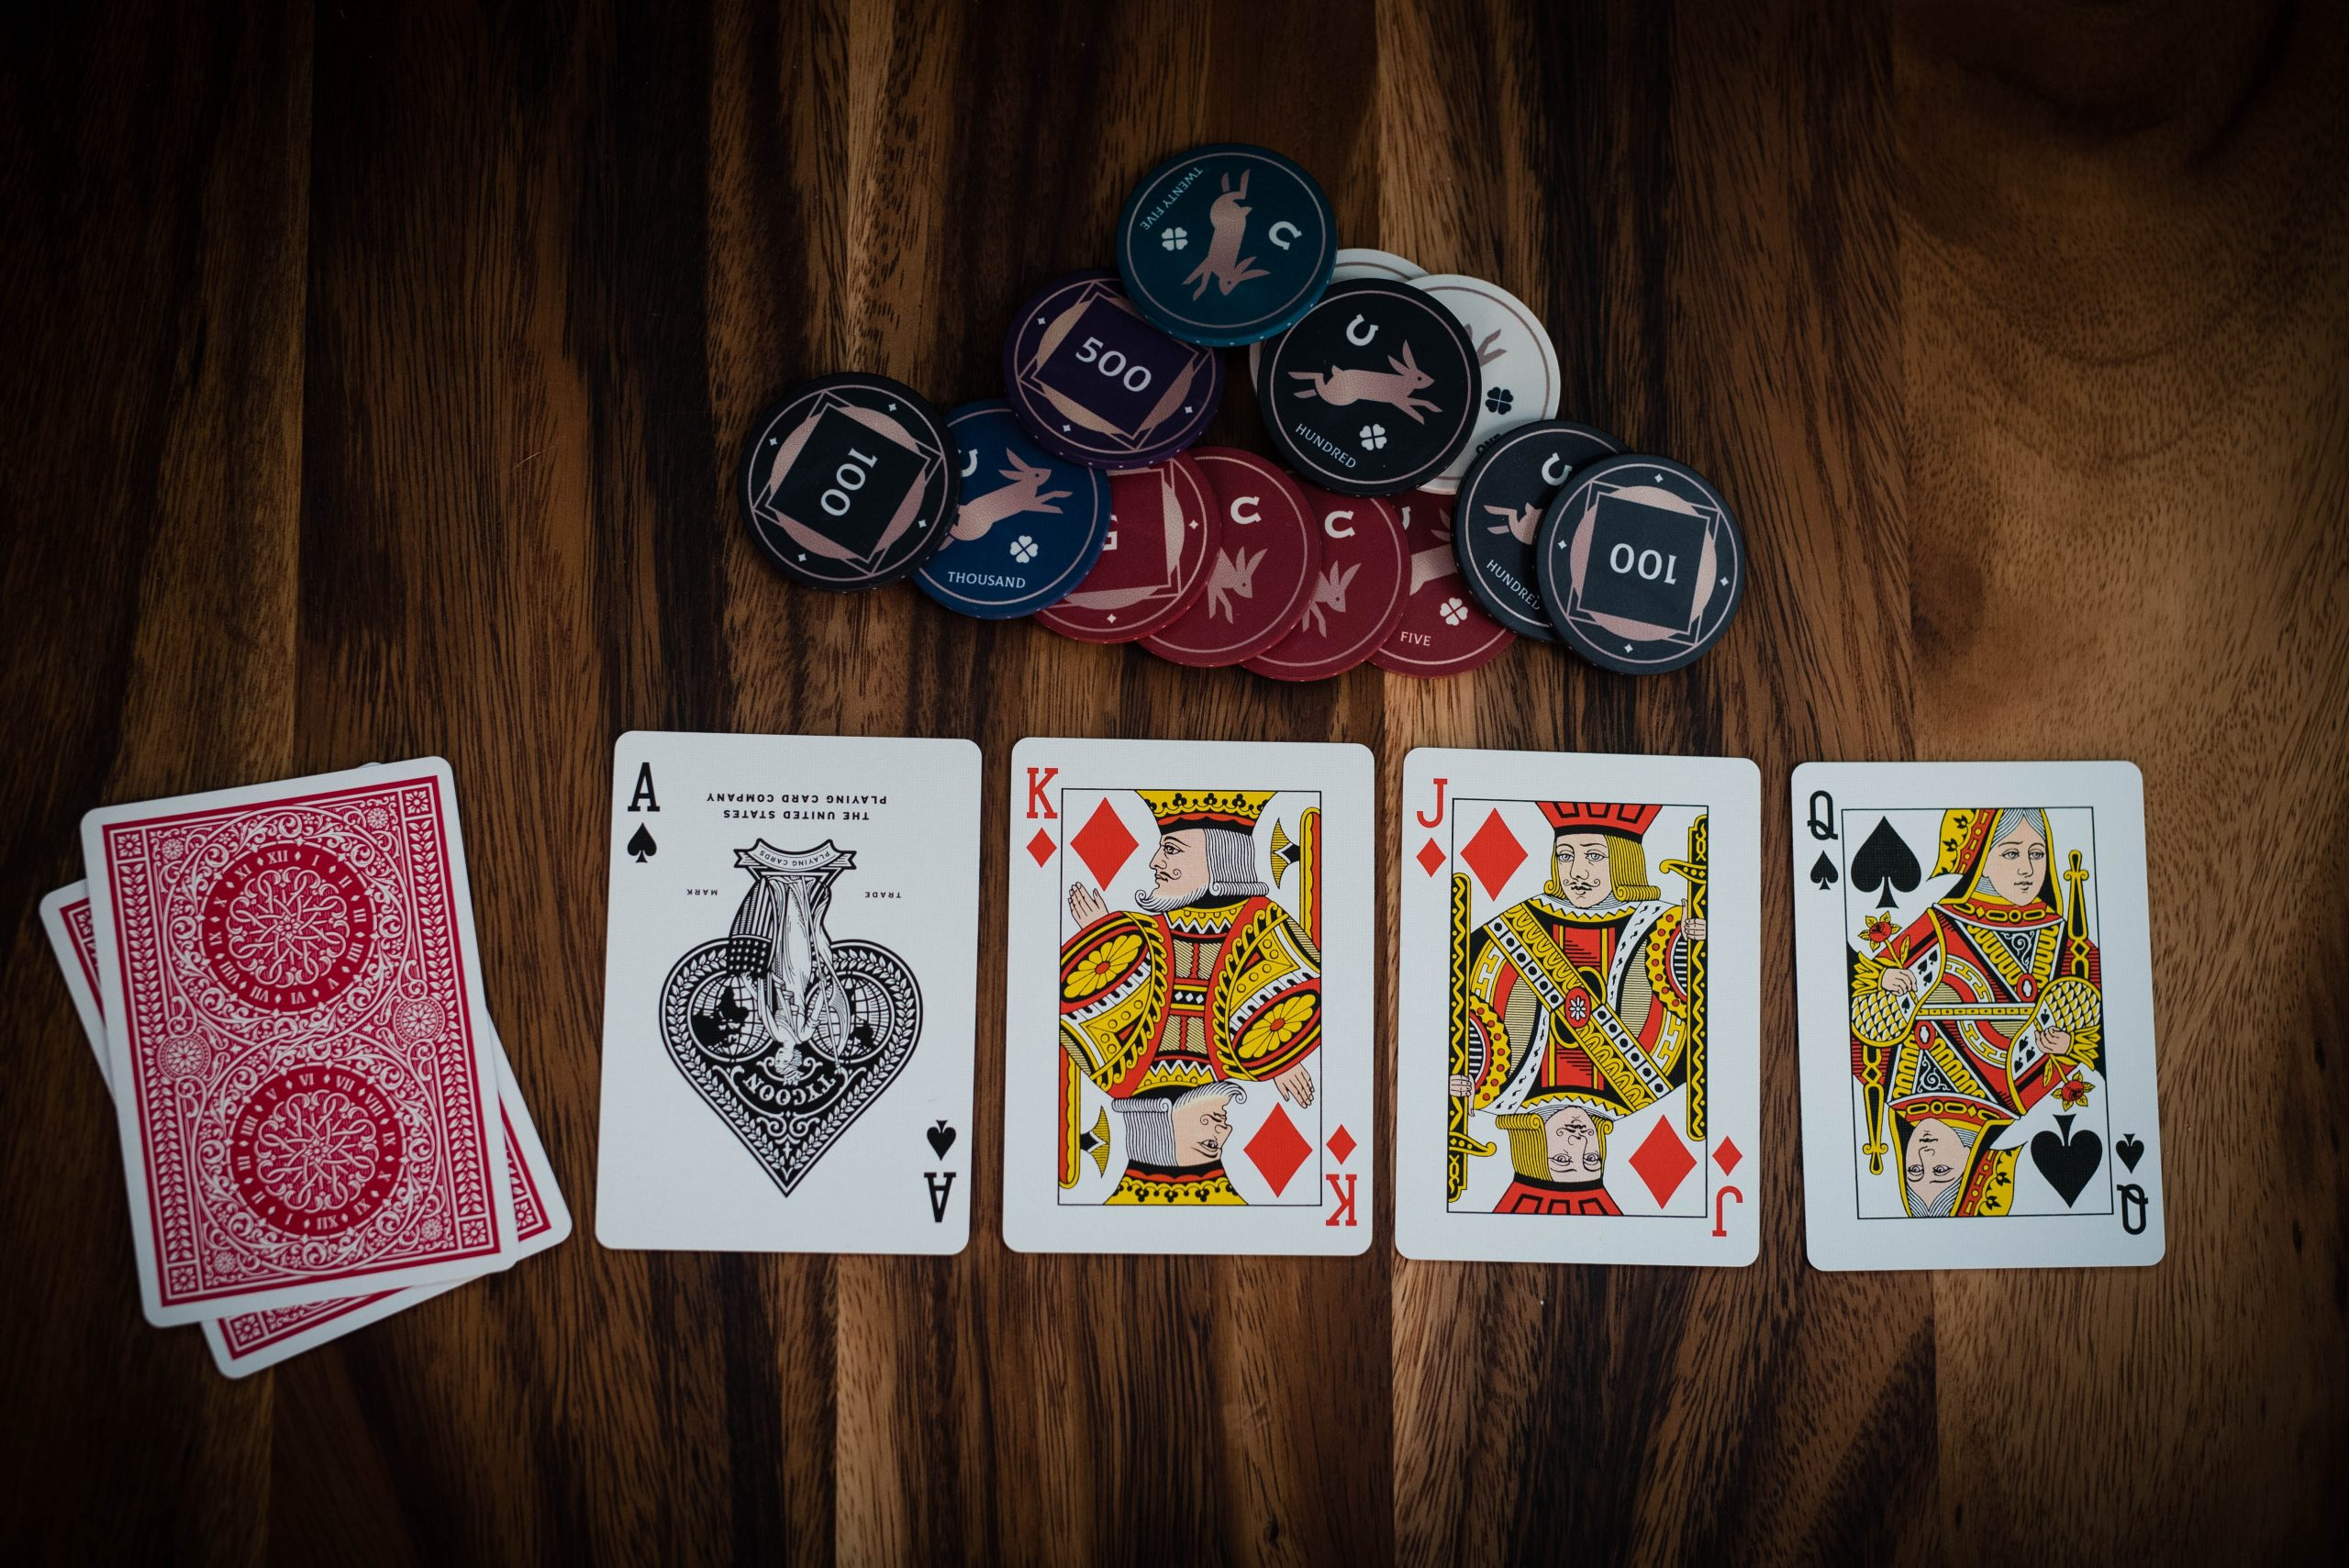 Have a great time of playing online casino games